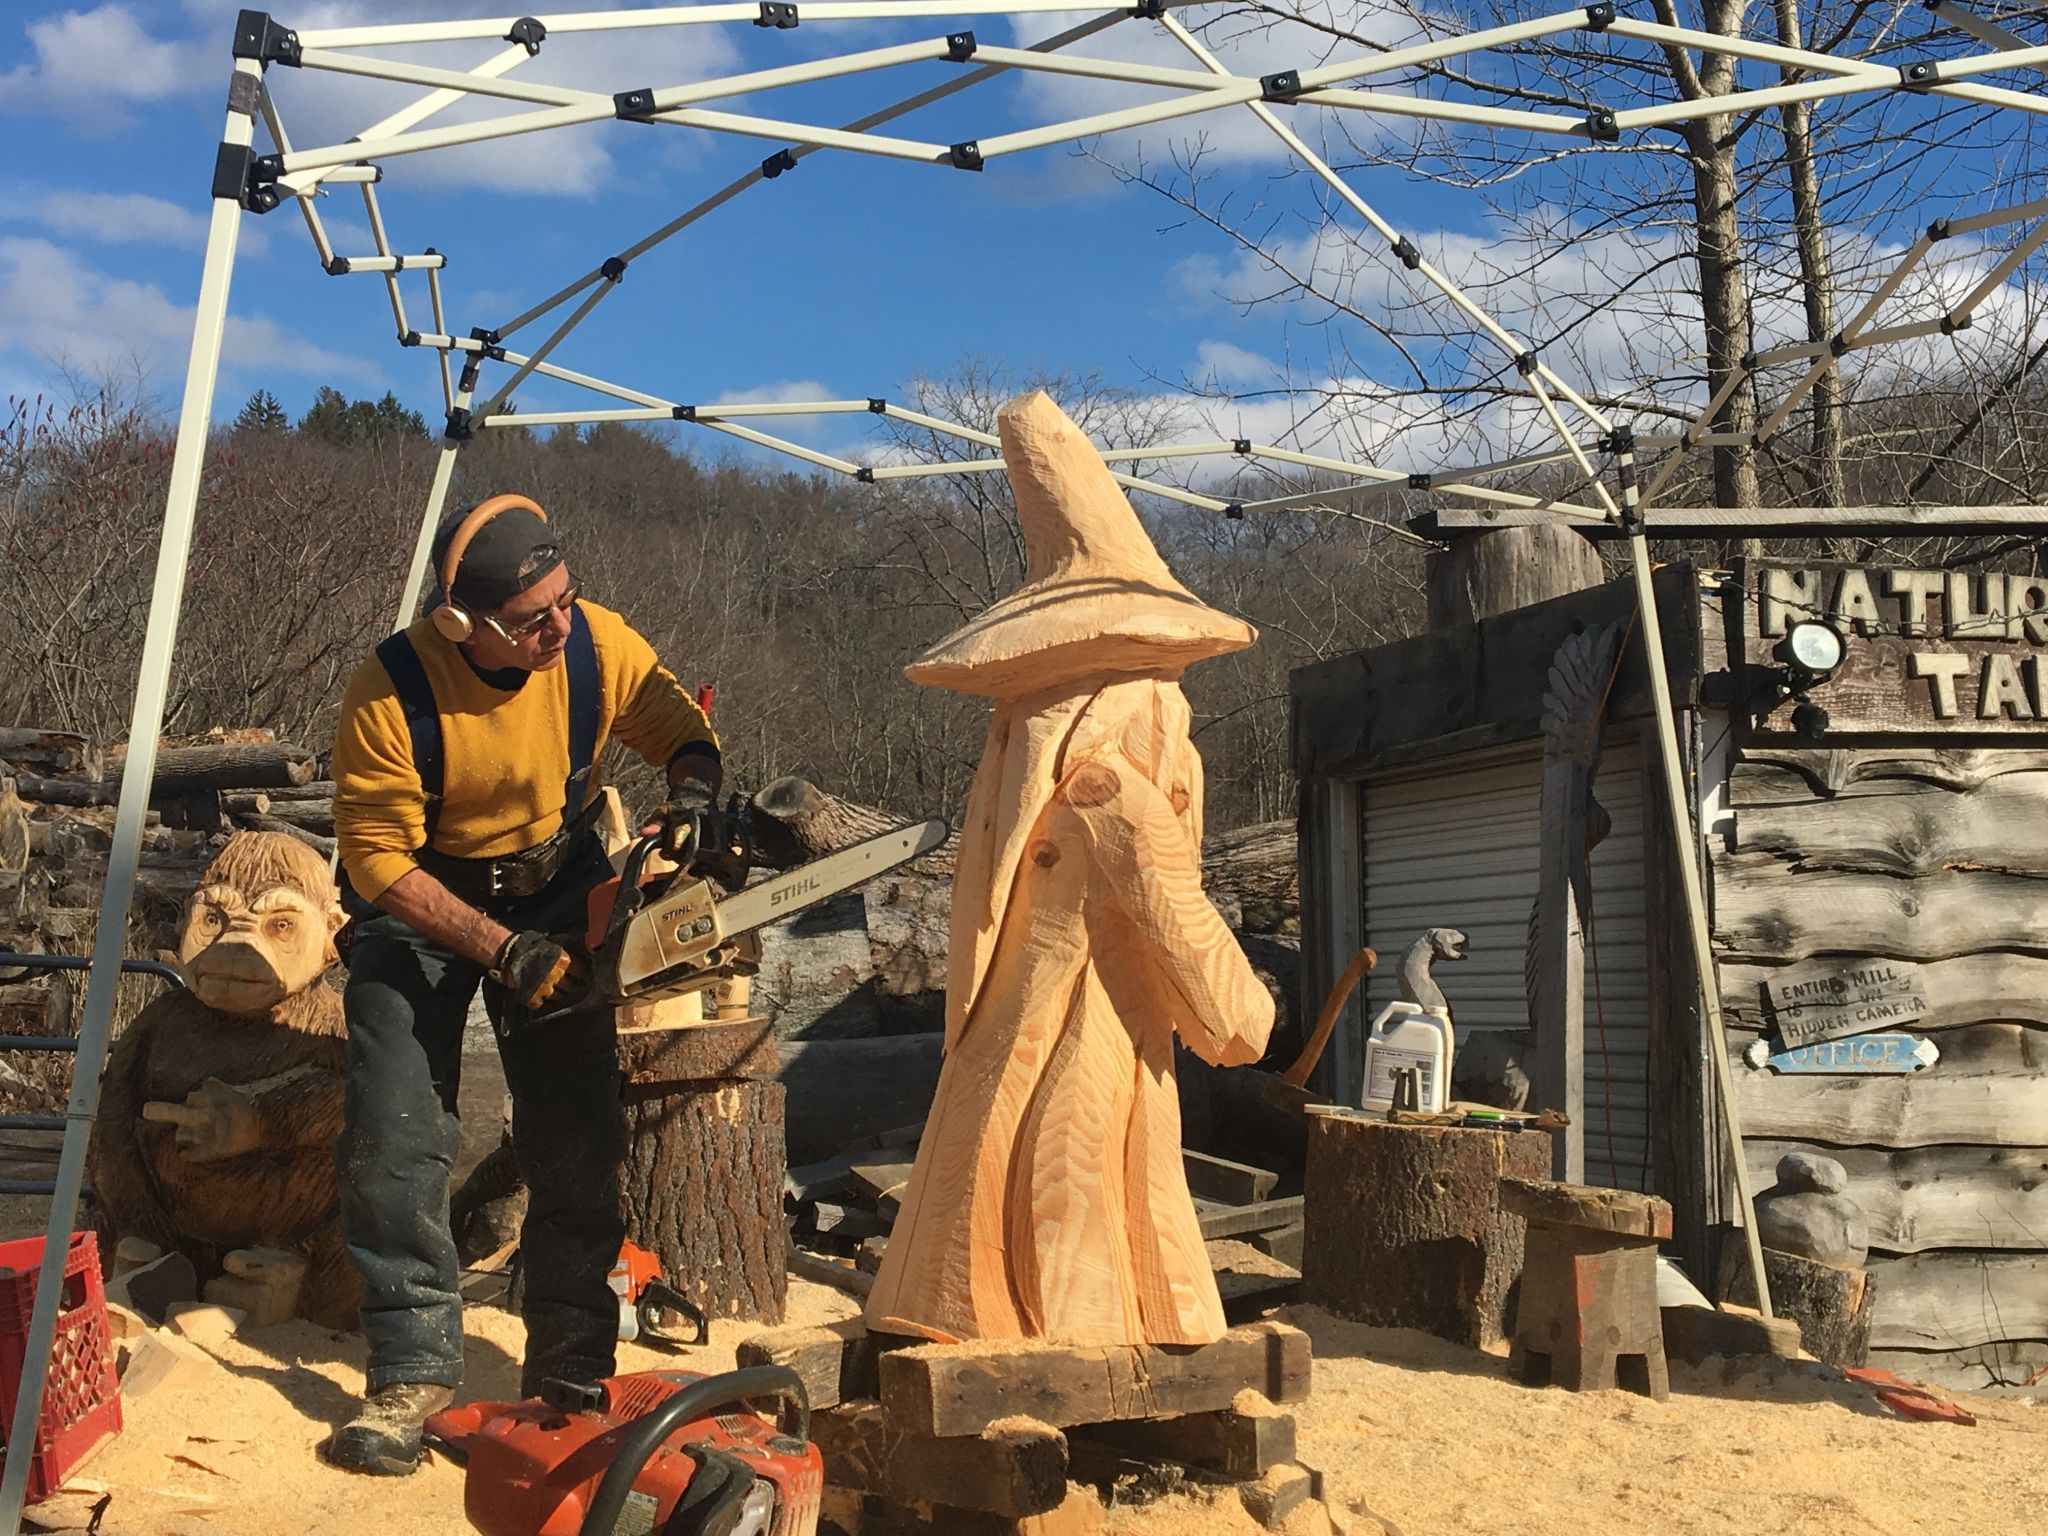 Danbury chain saw sculptor turns wood into works of art